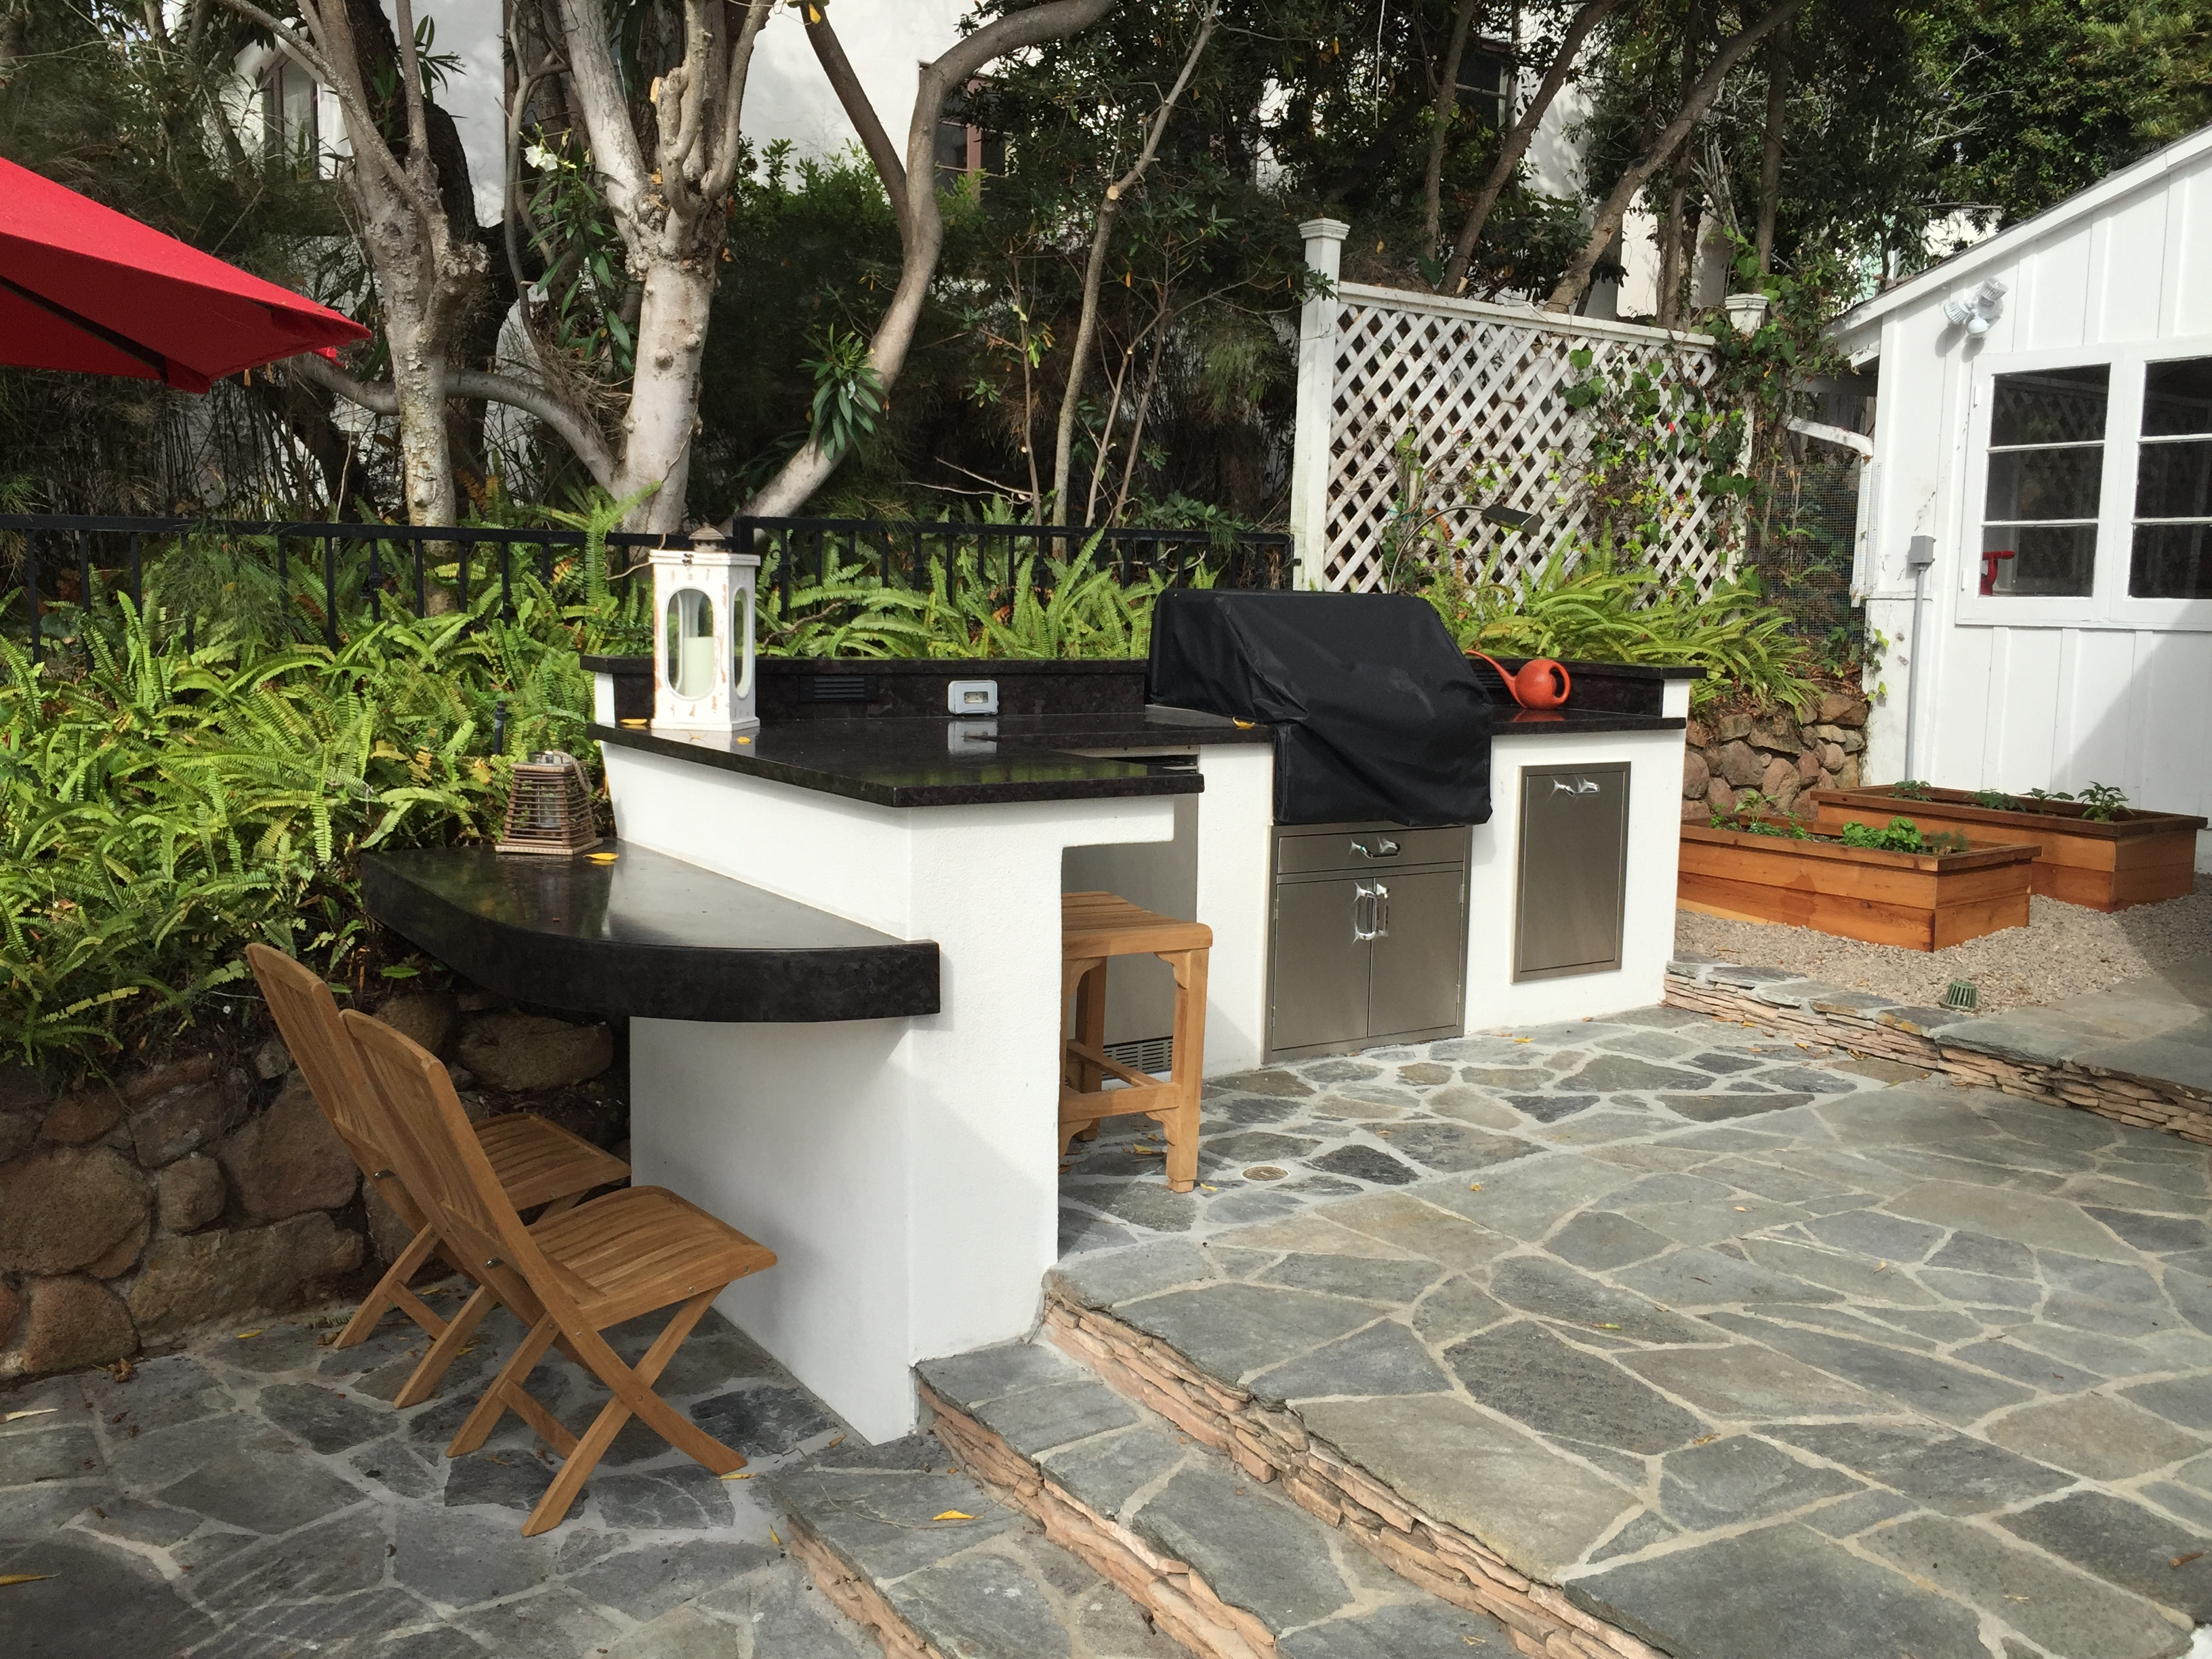 Give Us 1 Hour And Weu0027ll Show You How You Can Have Your Own Custom Backyard  BBQ Island!